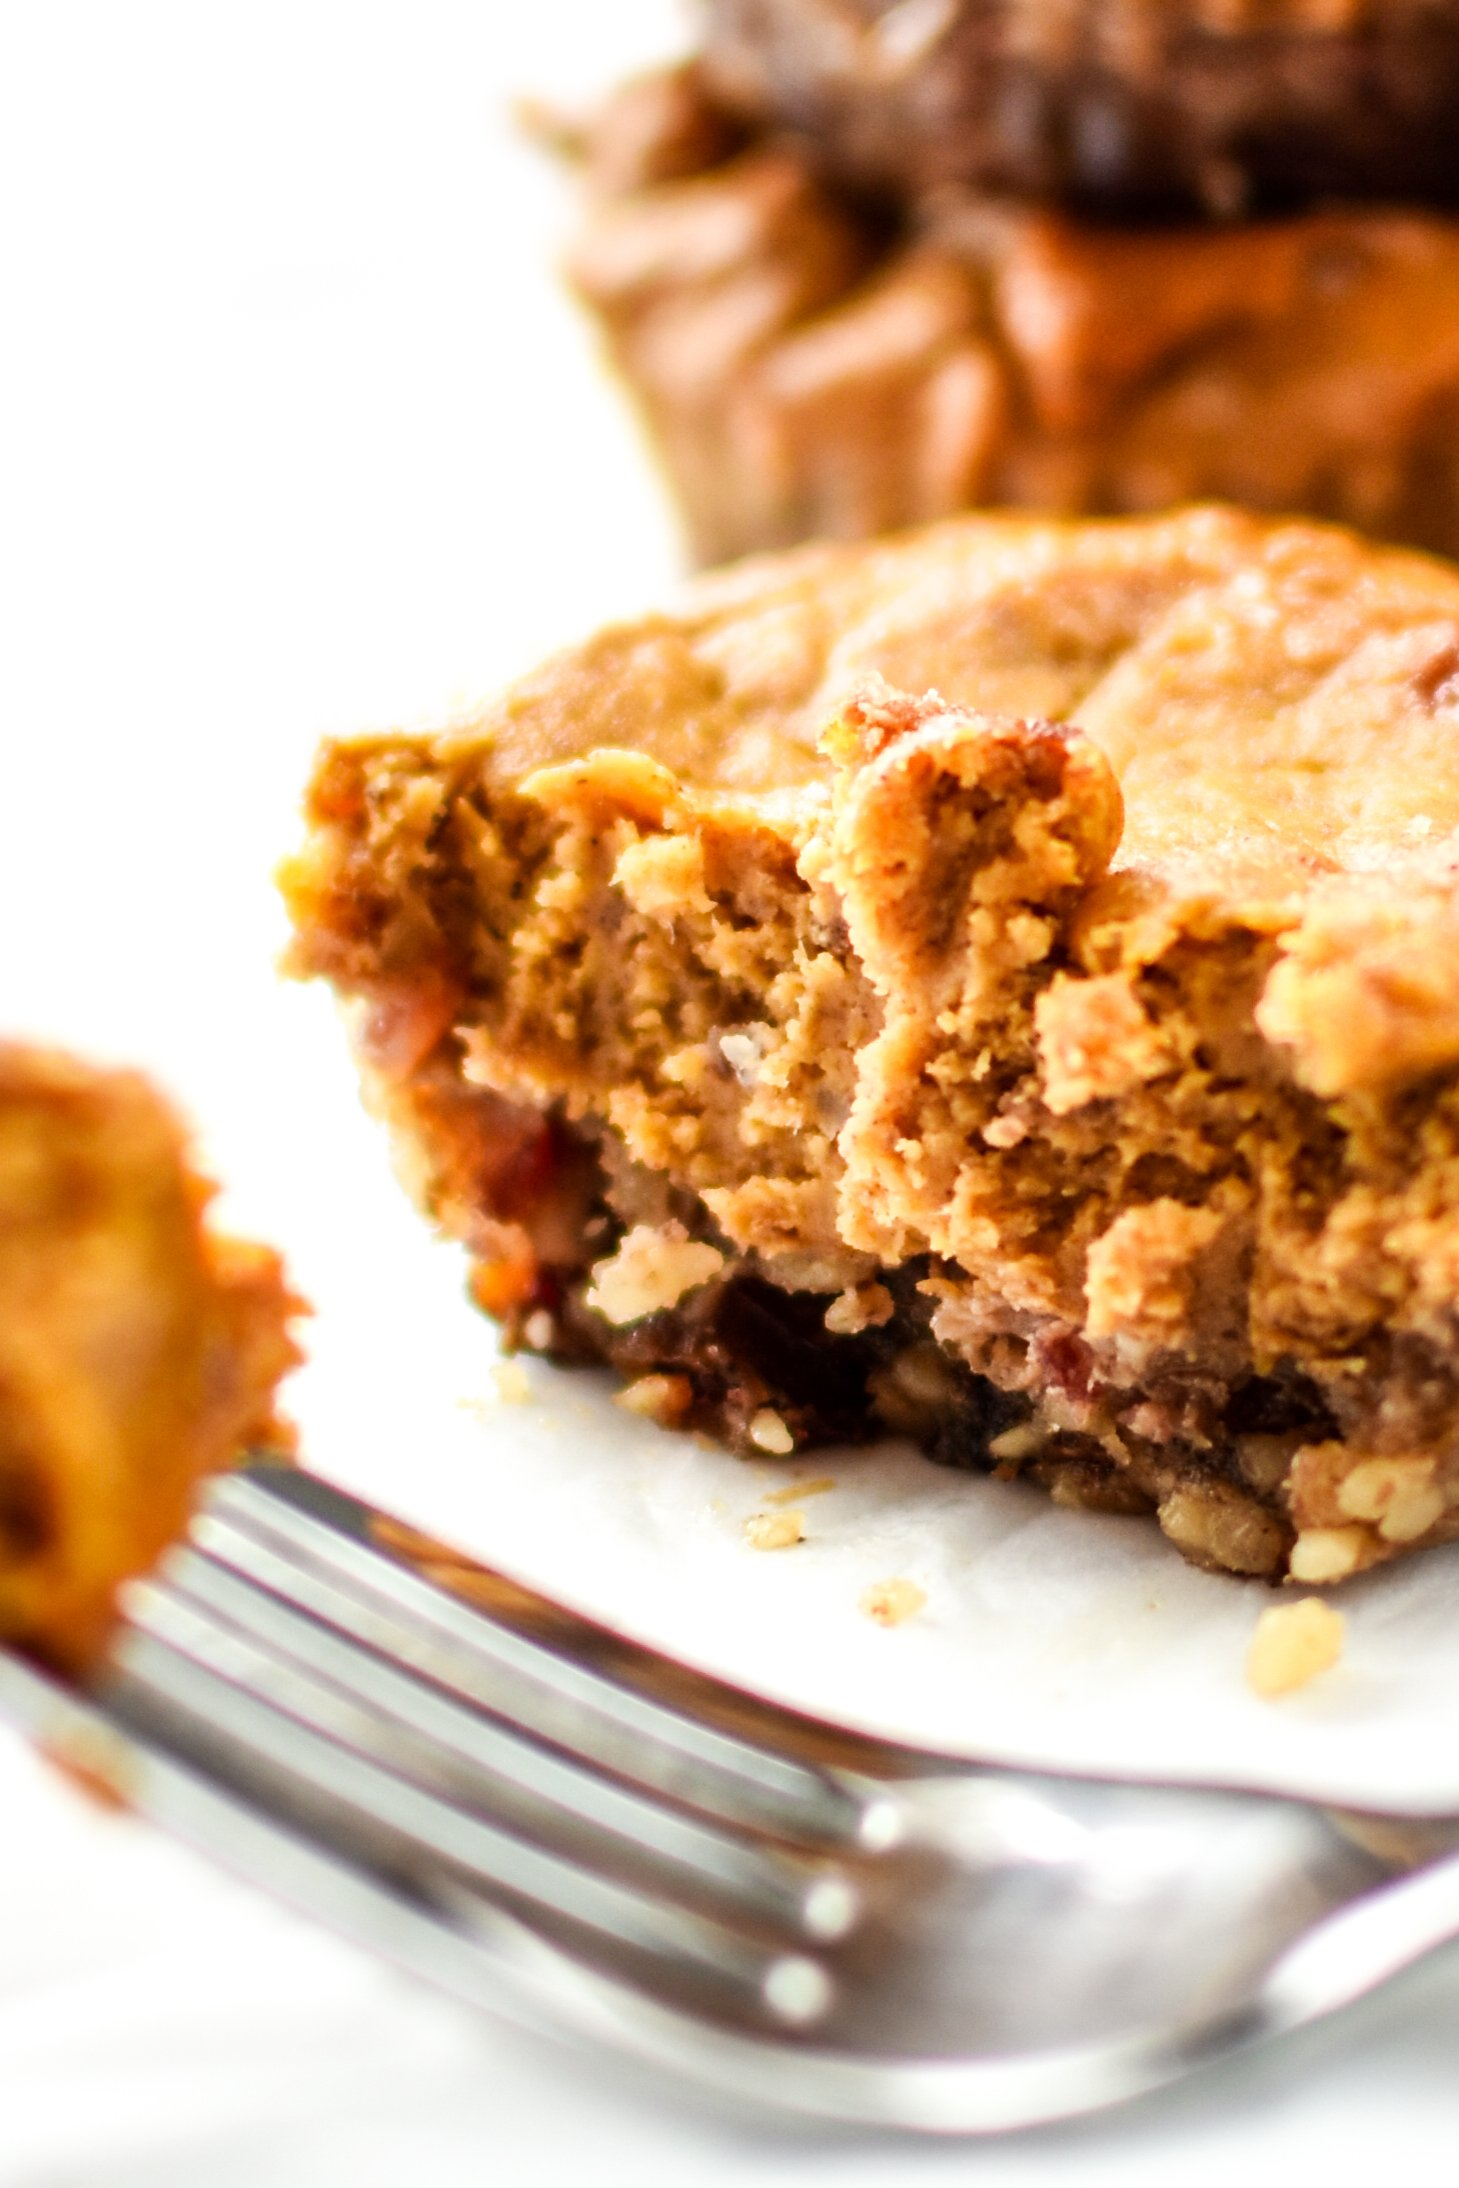 Fruit-Sweetened Mini Pumpkin Pies - Super adorable, creamy and delicious, not to mention both the crust and filling have no sugar added! Try this classic dessert in an easy to hold, pop-in-your-mouth version! - ProjectMealPlan.com